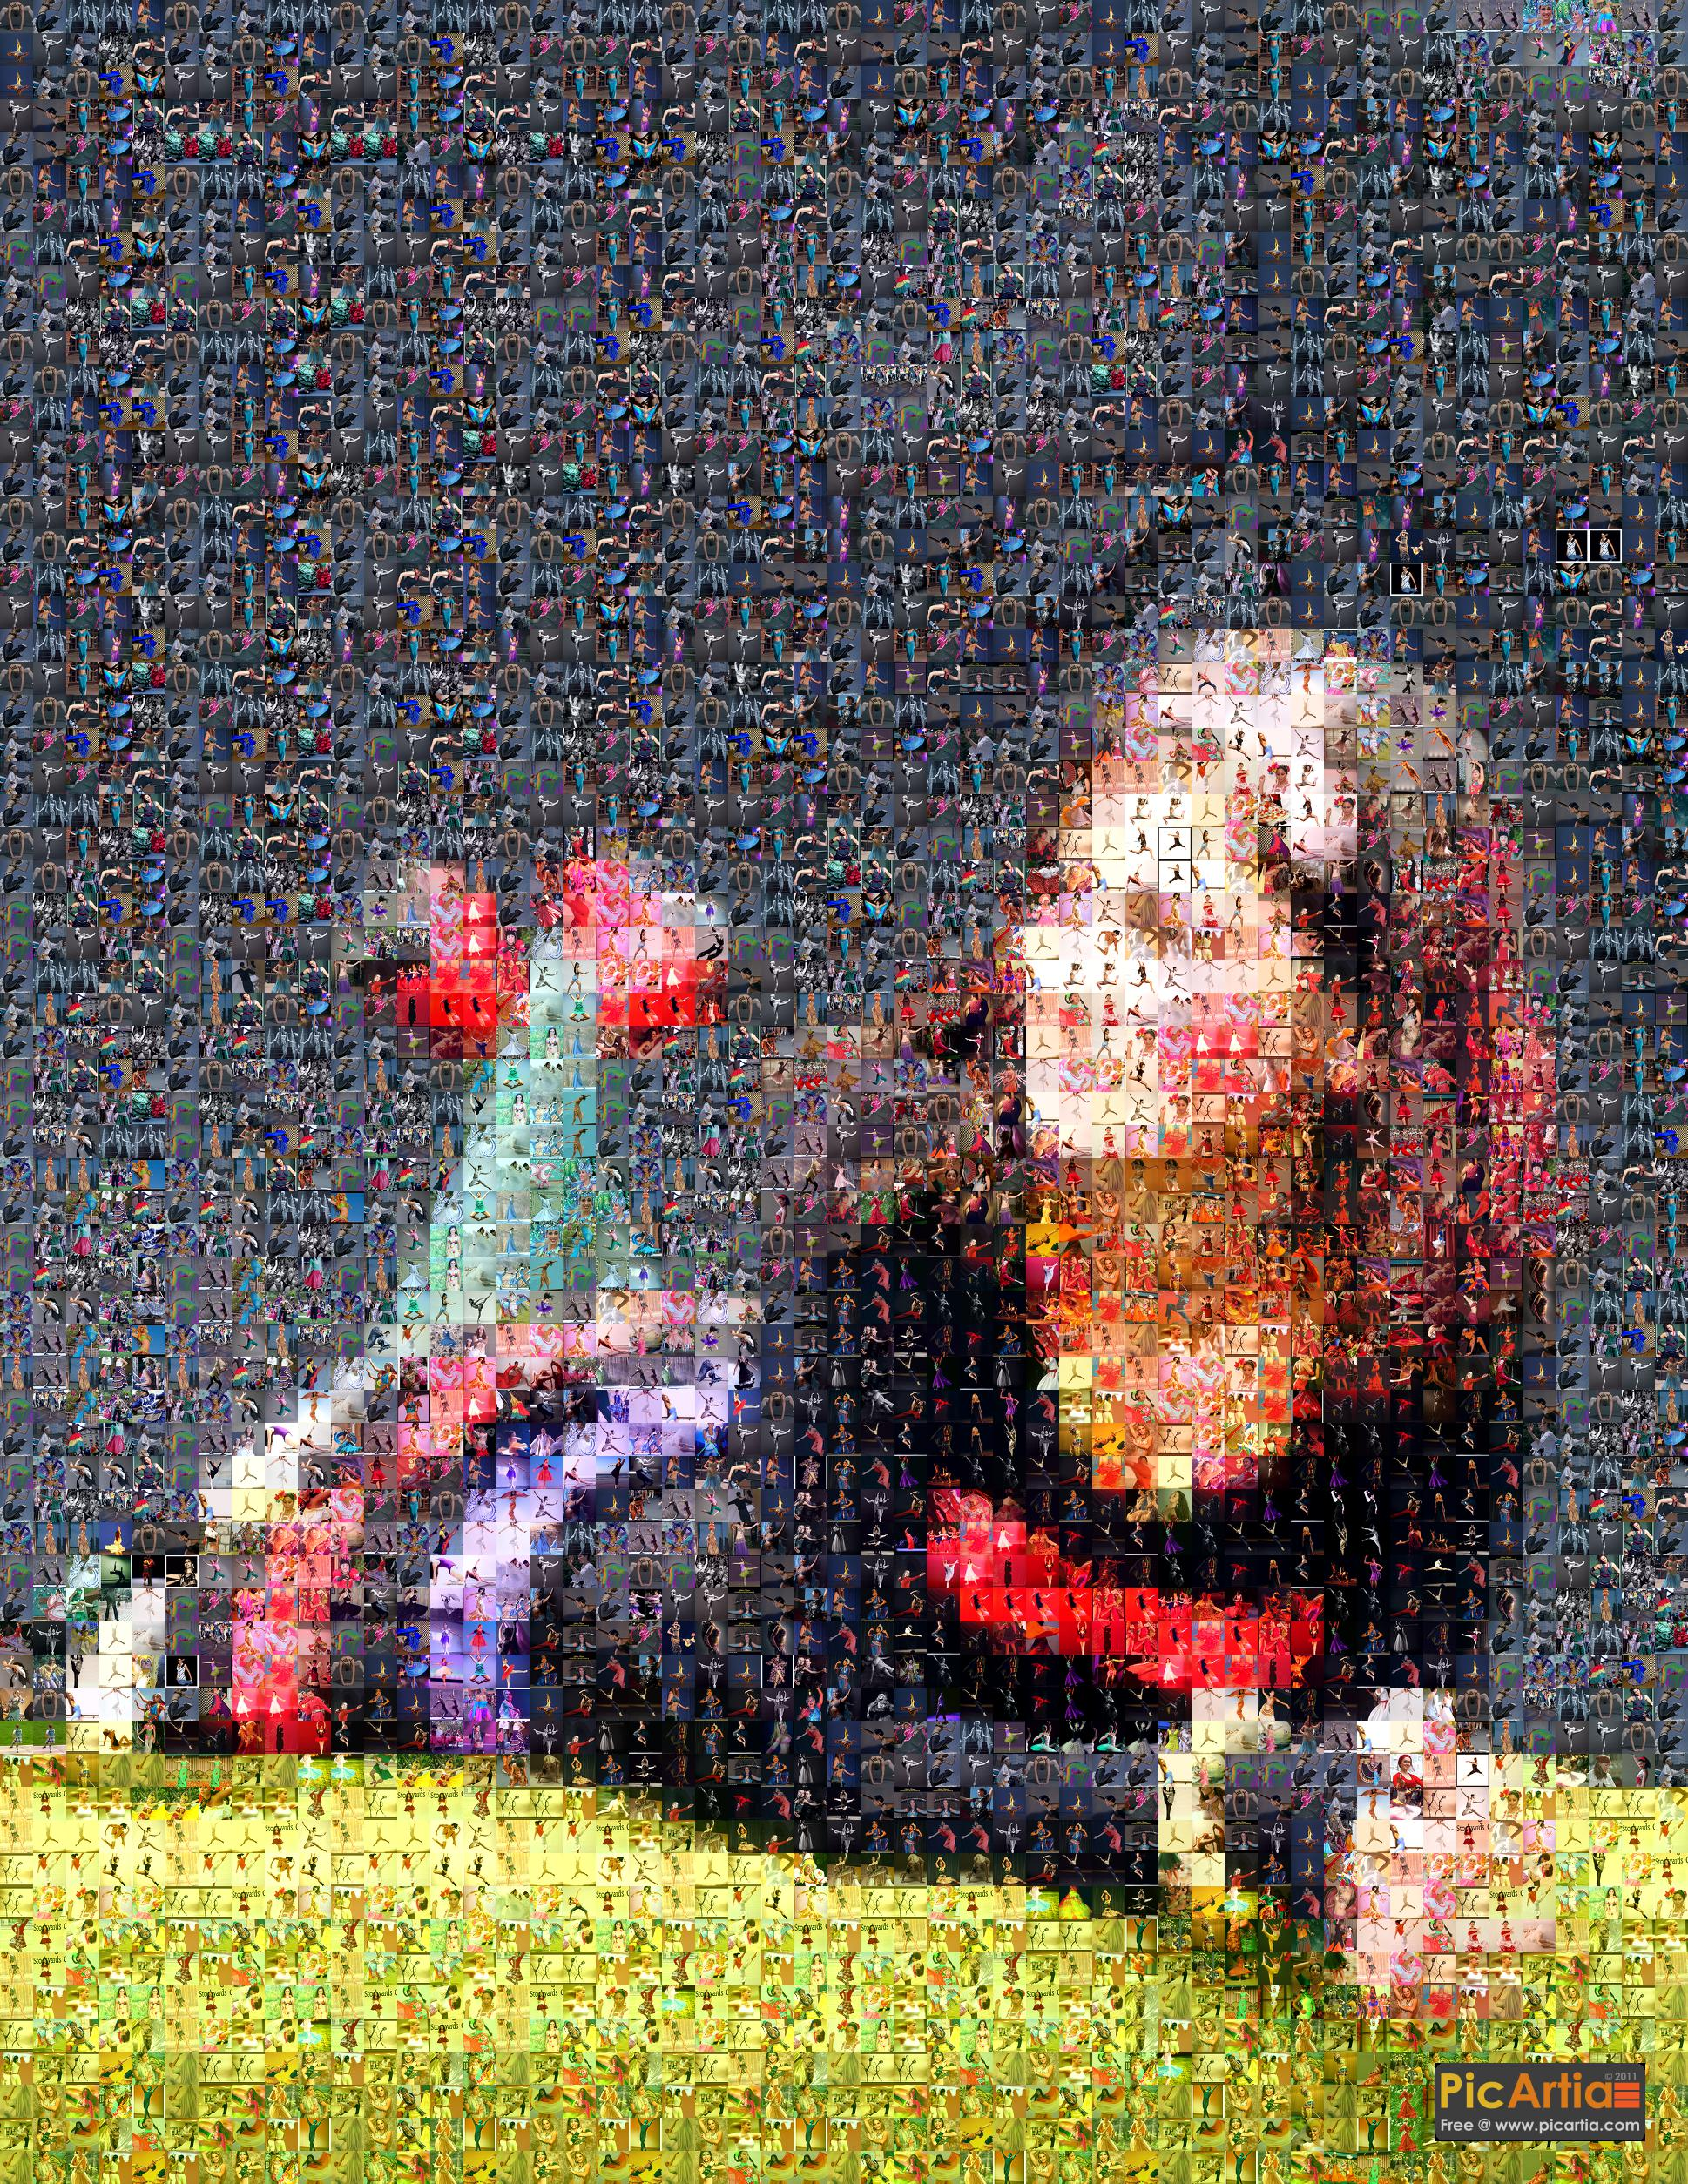 How To Quikly Create A Photo Mosaic For Free Digital